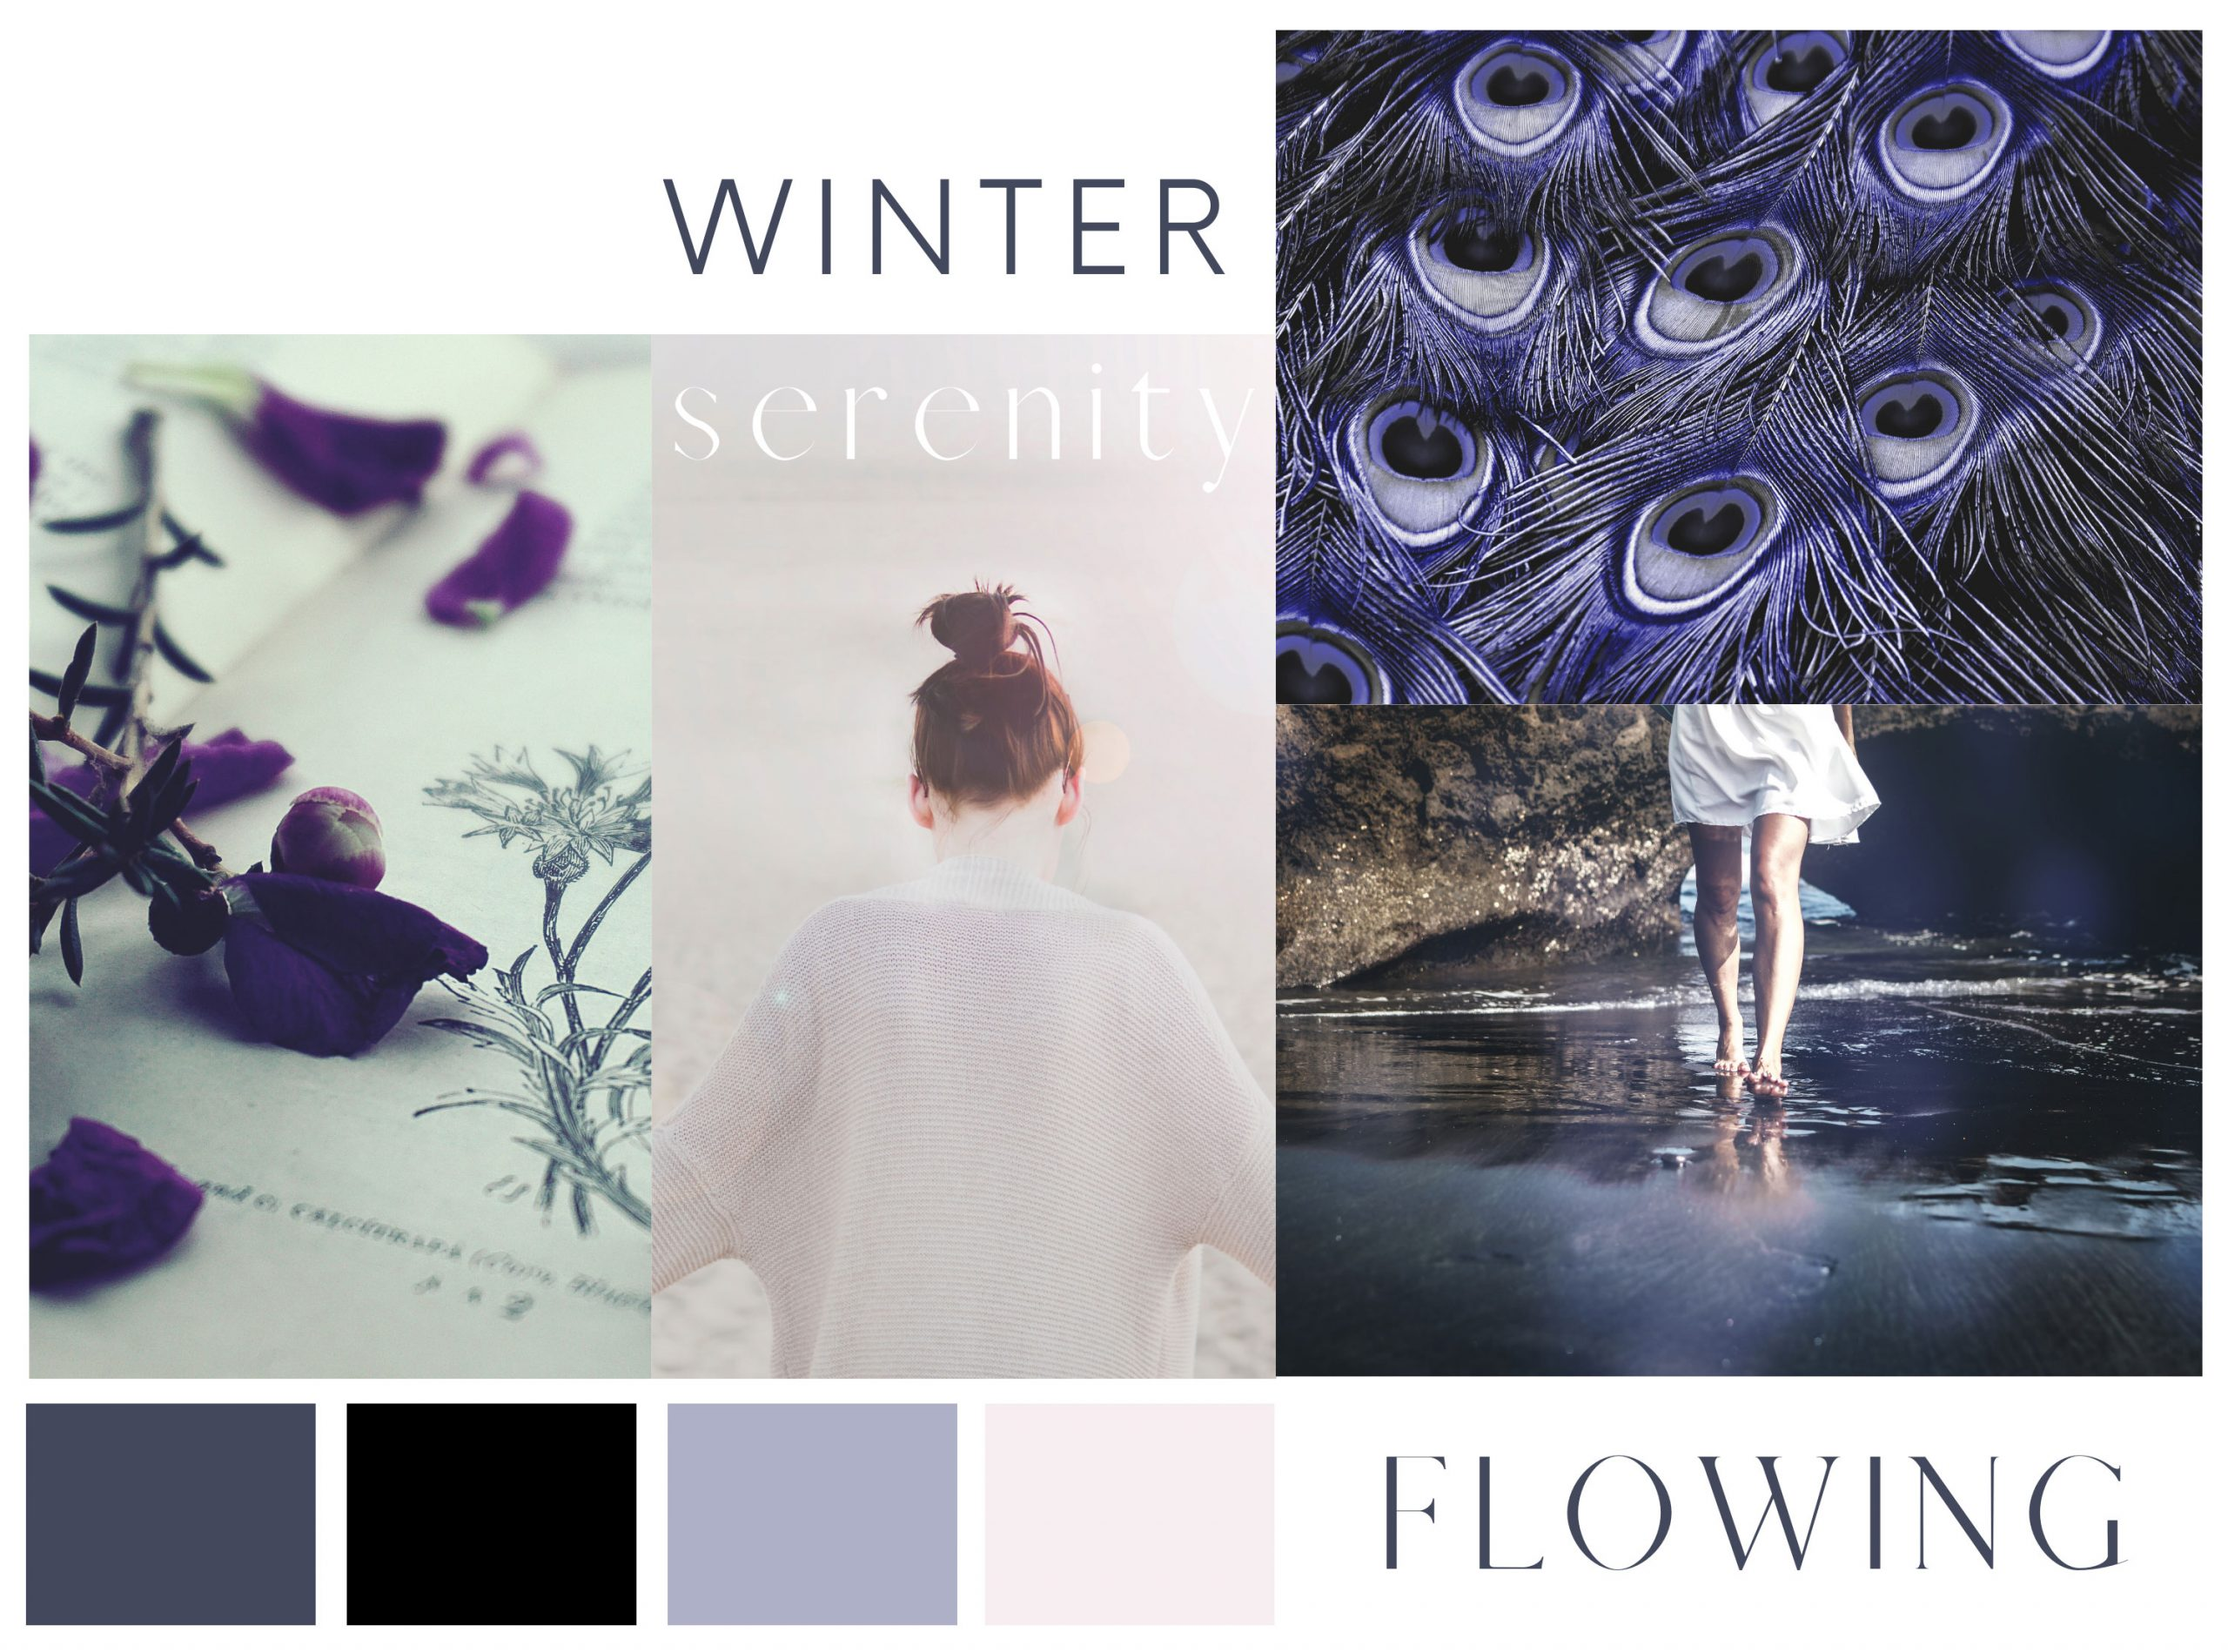 brand values moodboard example 1